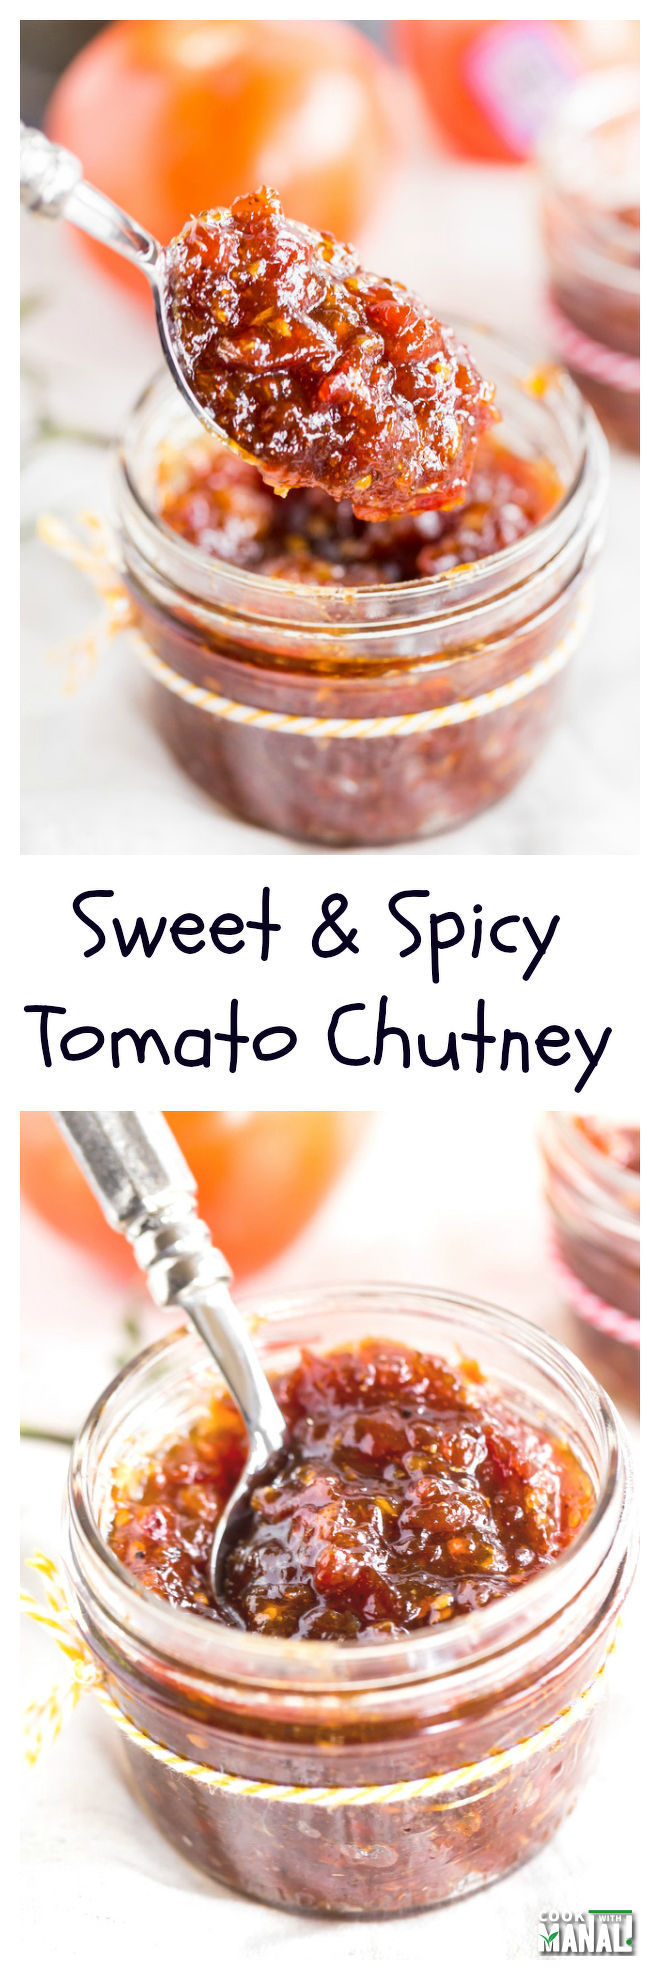 Sweet-and-spicy-tomato-chutney-collage